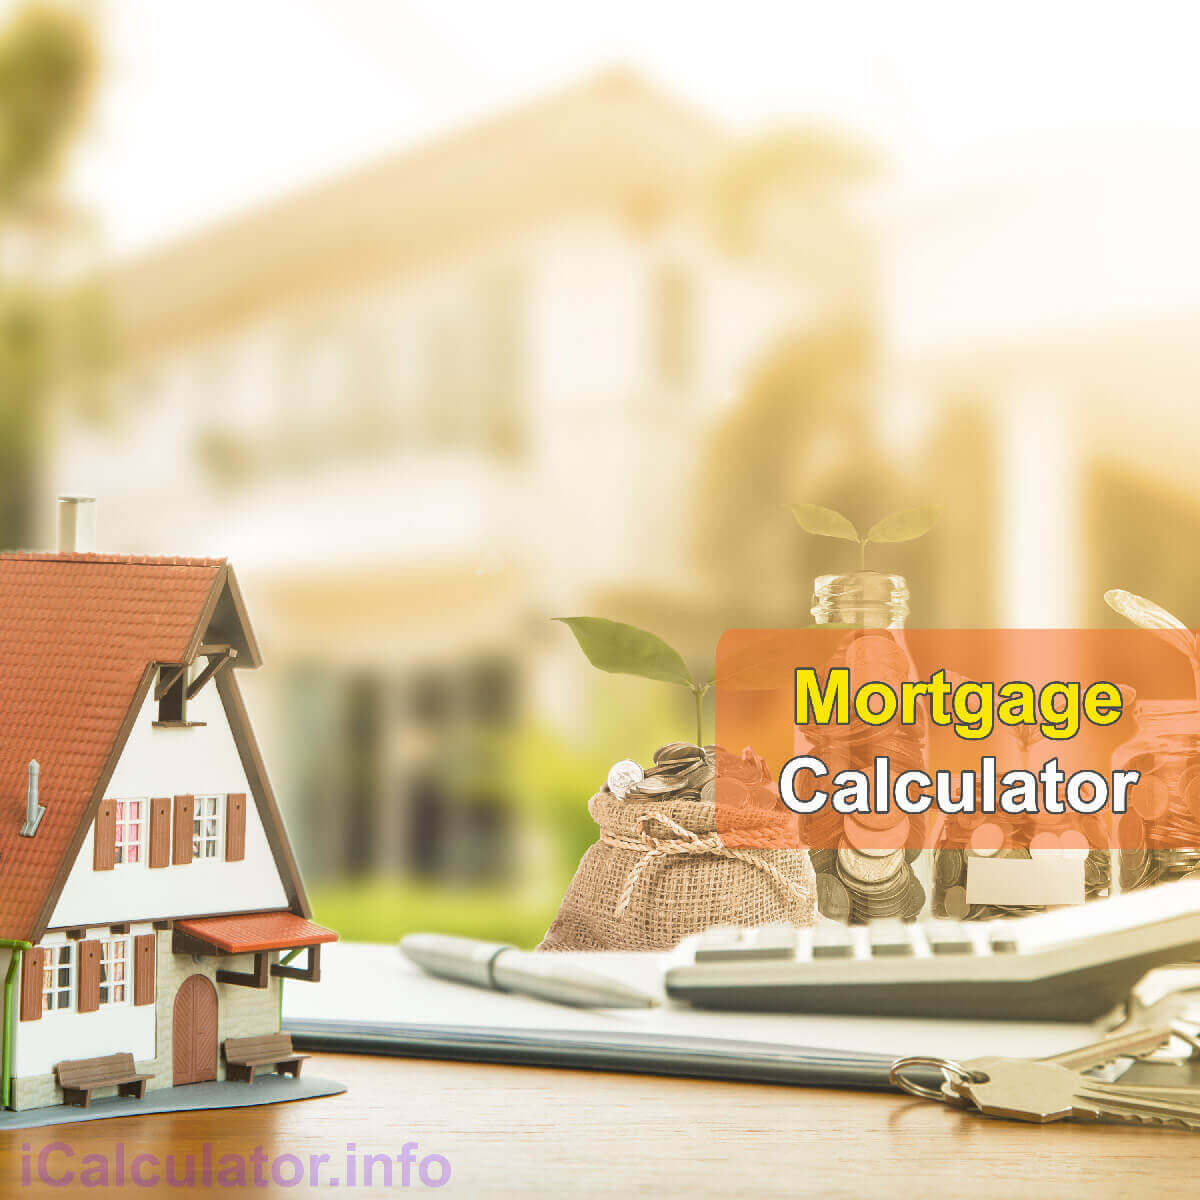 Mortgage Calculator. This image shows a beautiful home for a first time buyer, a notepad and a calculator being used to calculate the monthly repayment amount on a £131,500.00 mortgage with a 6.5% mortgage interest rate. Alternatively, people can calculate their monthly mortgage repayments on £131,500.00 at 6.5% using the mortgage calculator by iCalculator Finance Tax Calculator